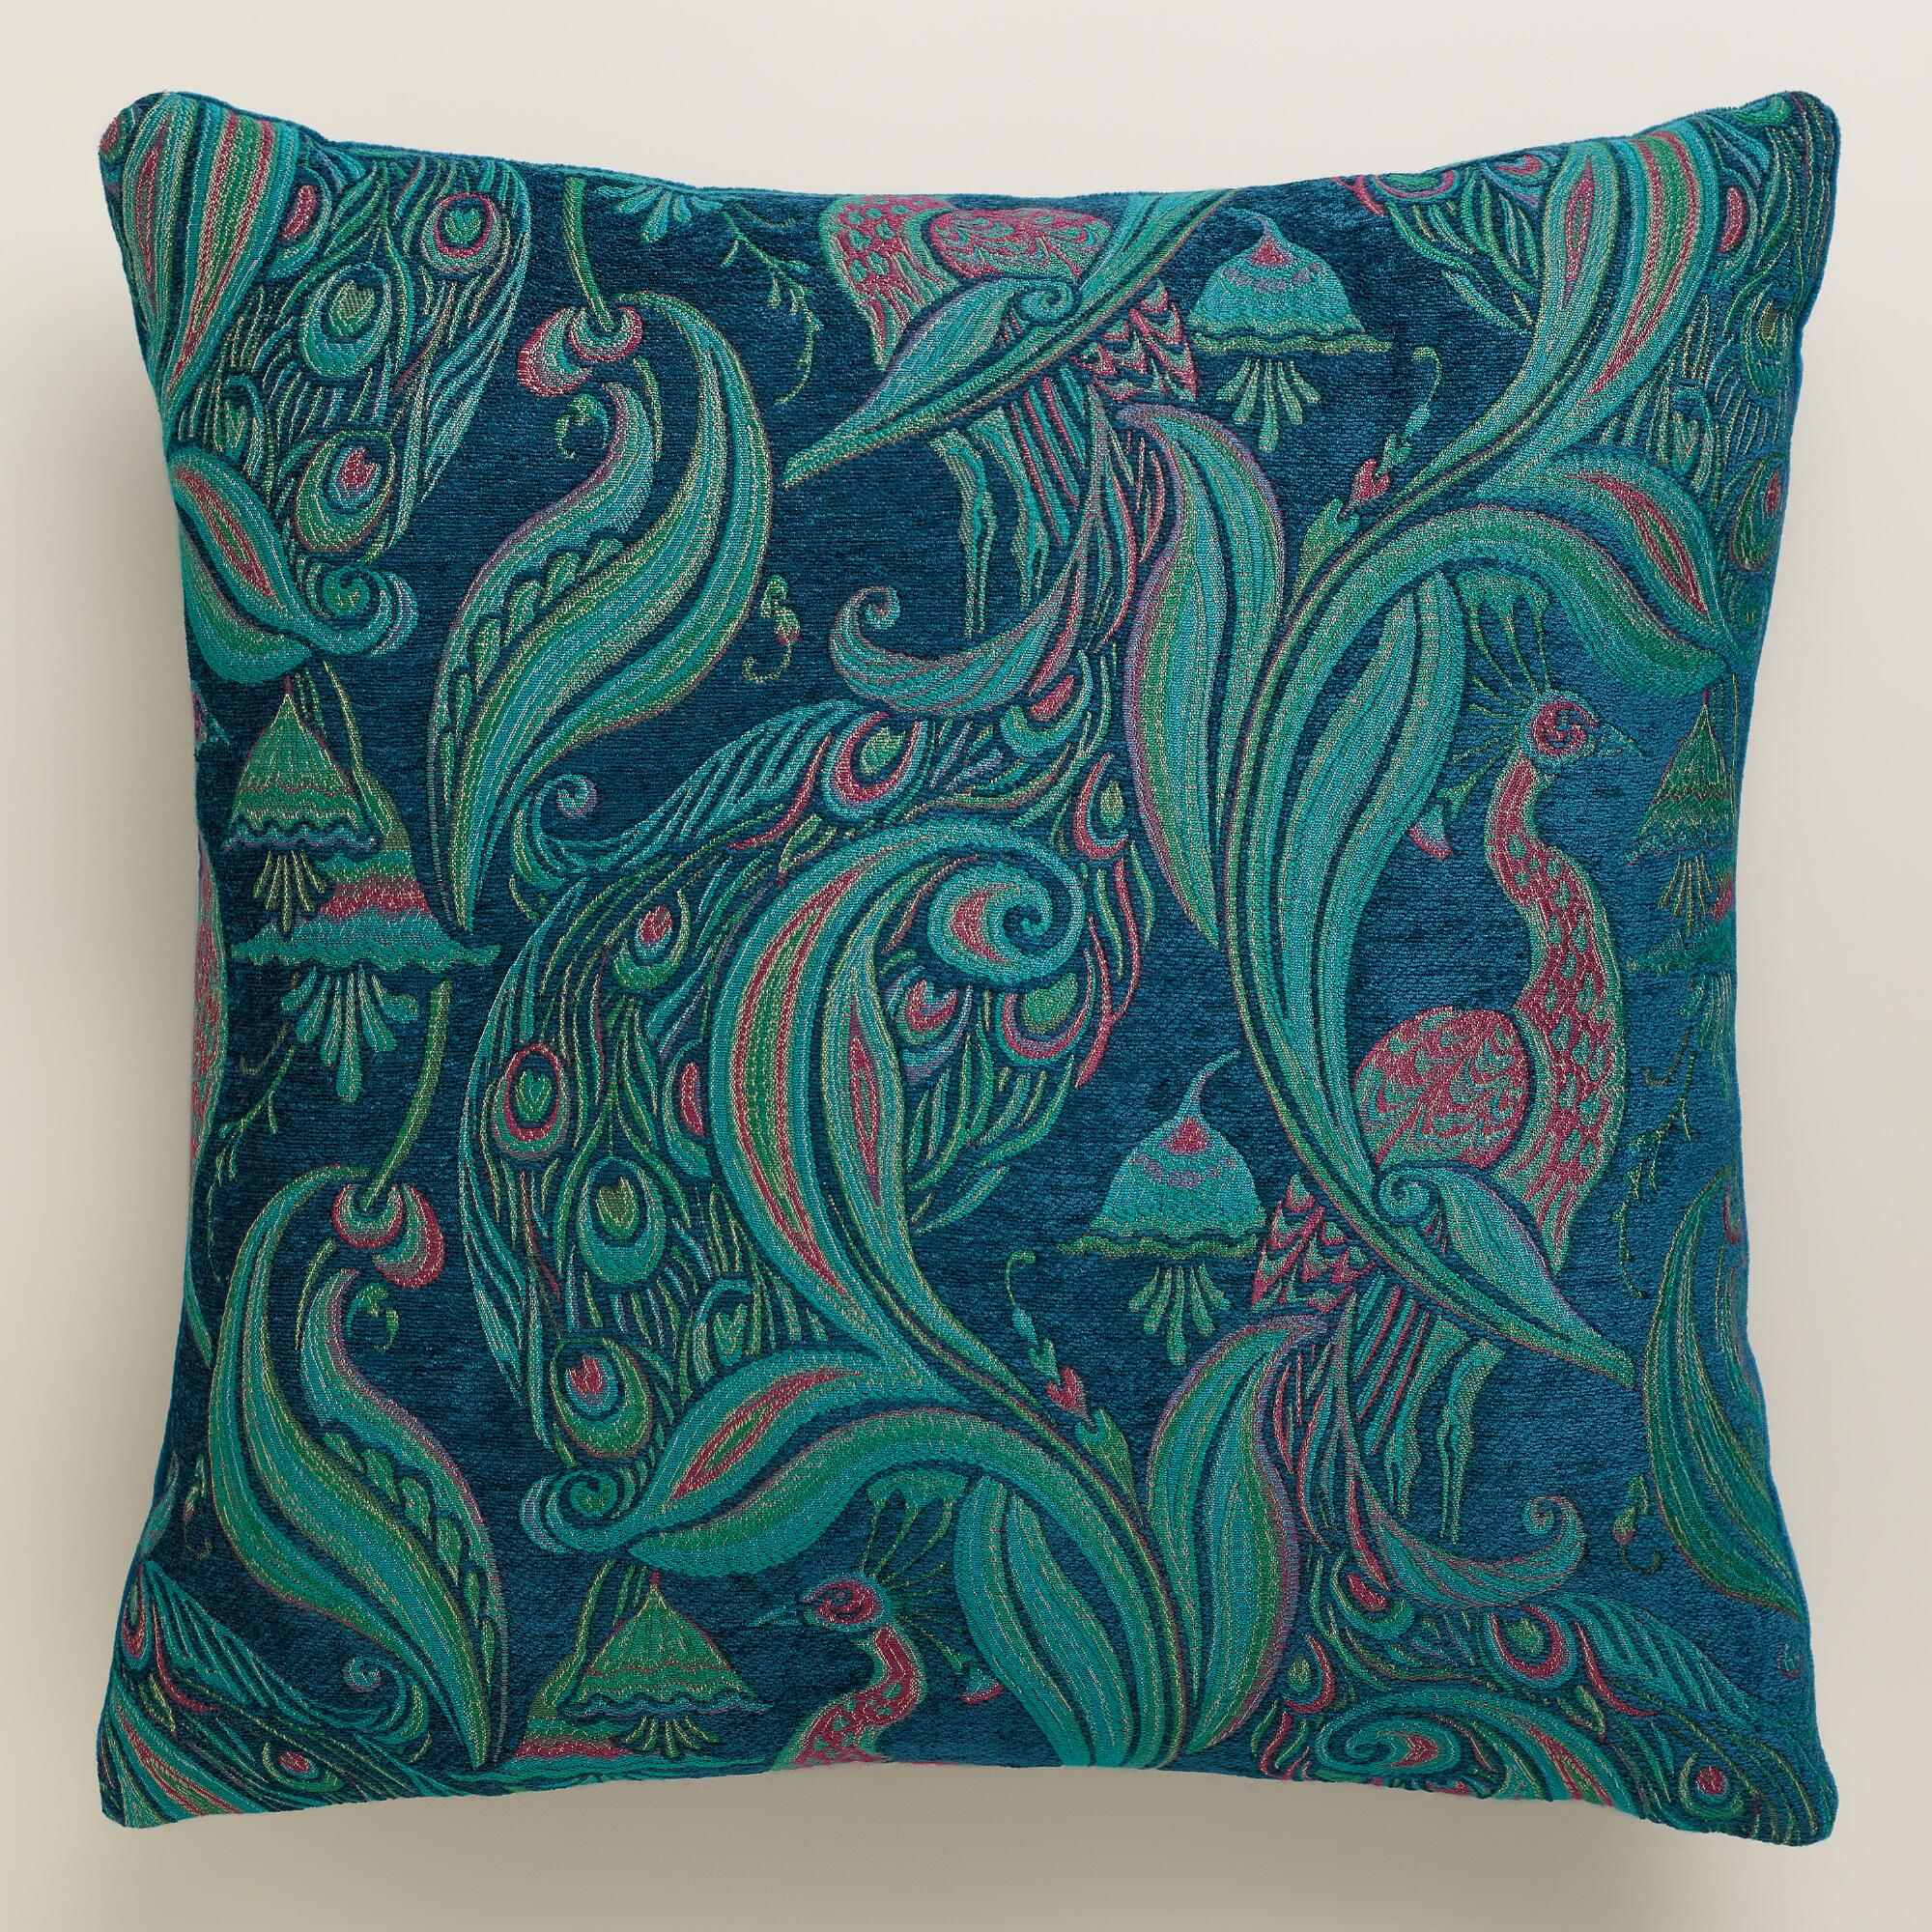 Throw Pillow Peacock : Deep Blue Pastoral Peacock Throw Pillow World Market